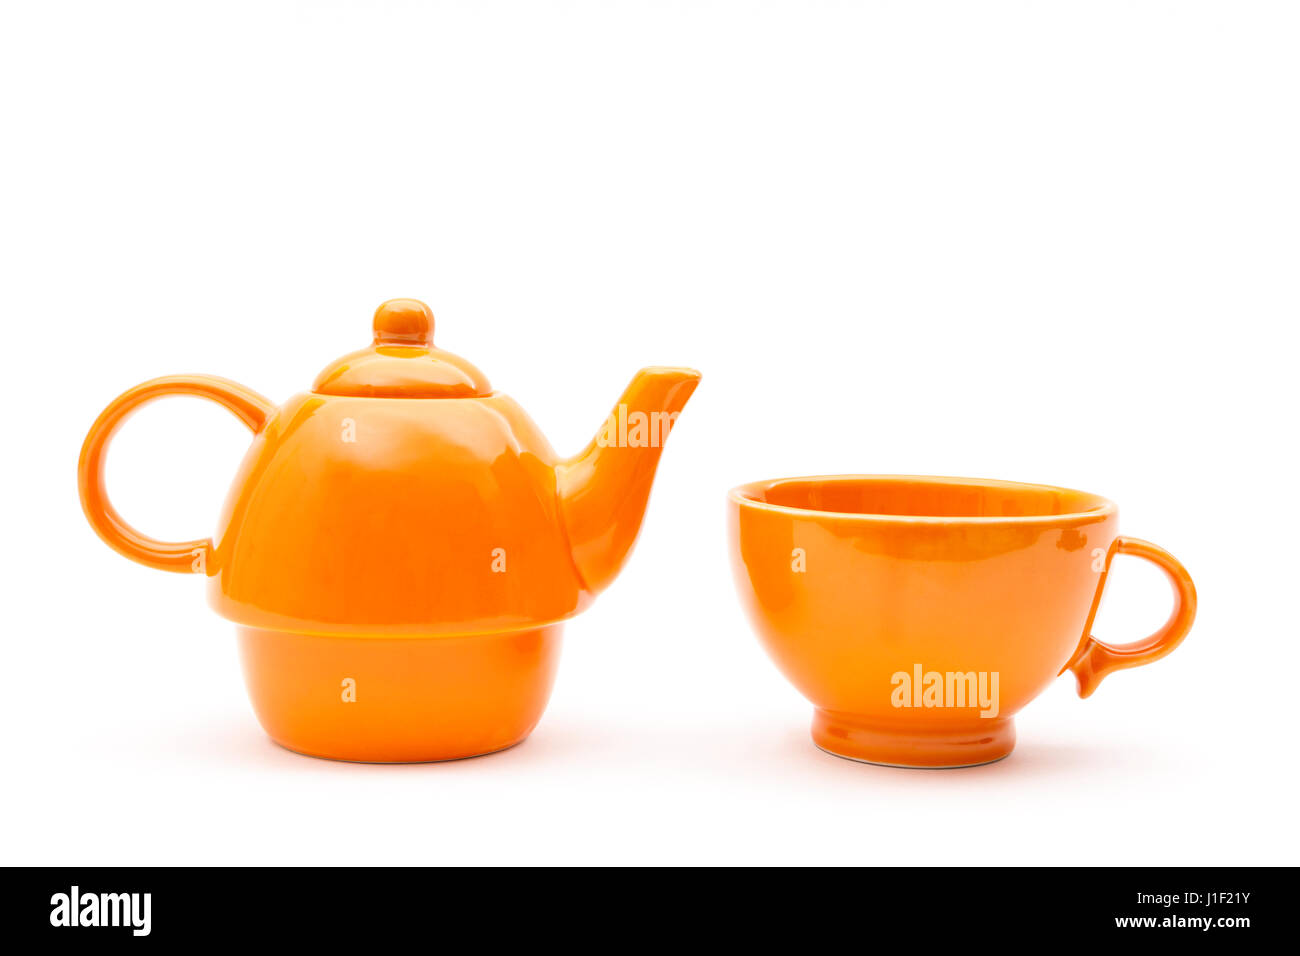 Matching orange teapot and cup isolated on a white background - Stock Image